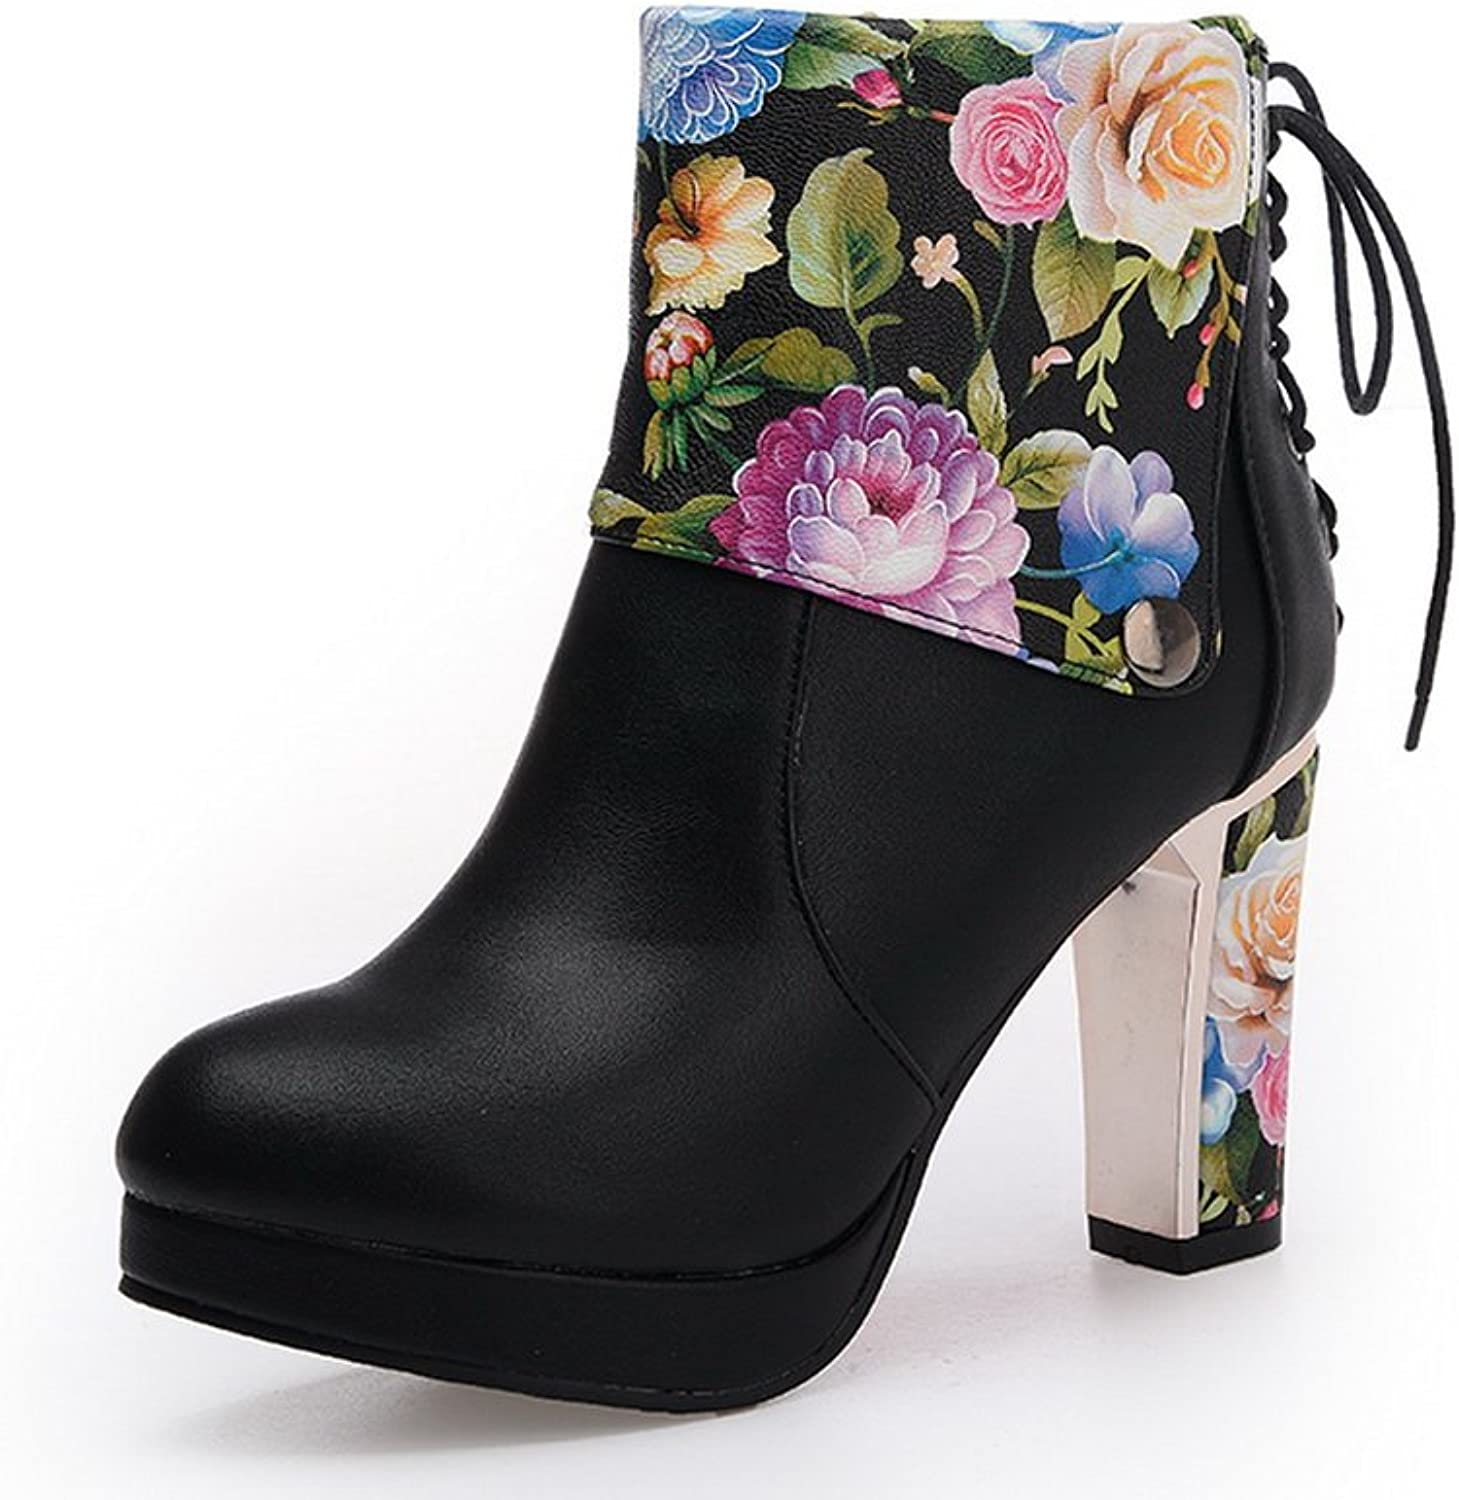 AdeeSu Womens Comfort Floral Slip-Resistant Pointed-Toe Chunky Heels Urethane Boots SXC01820